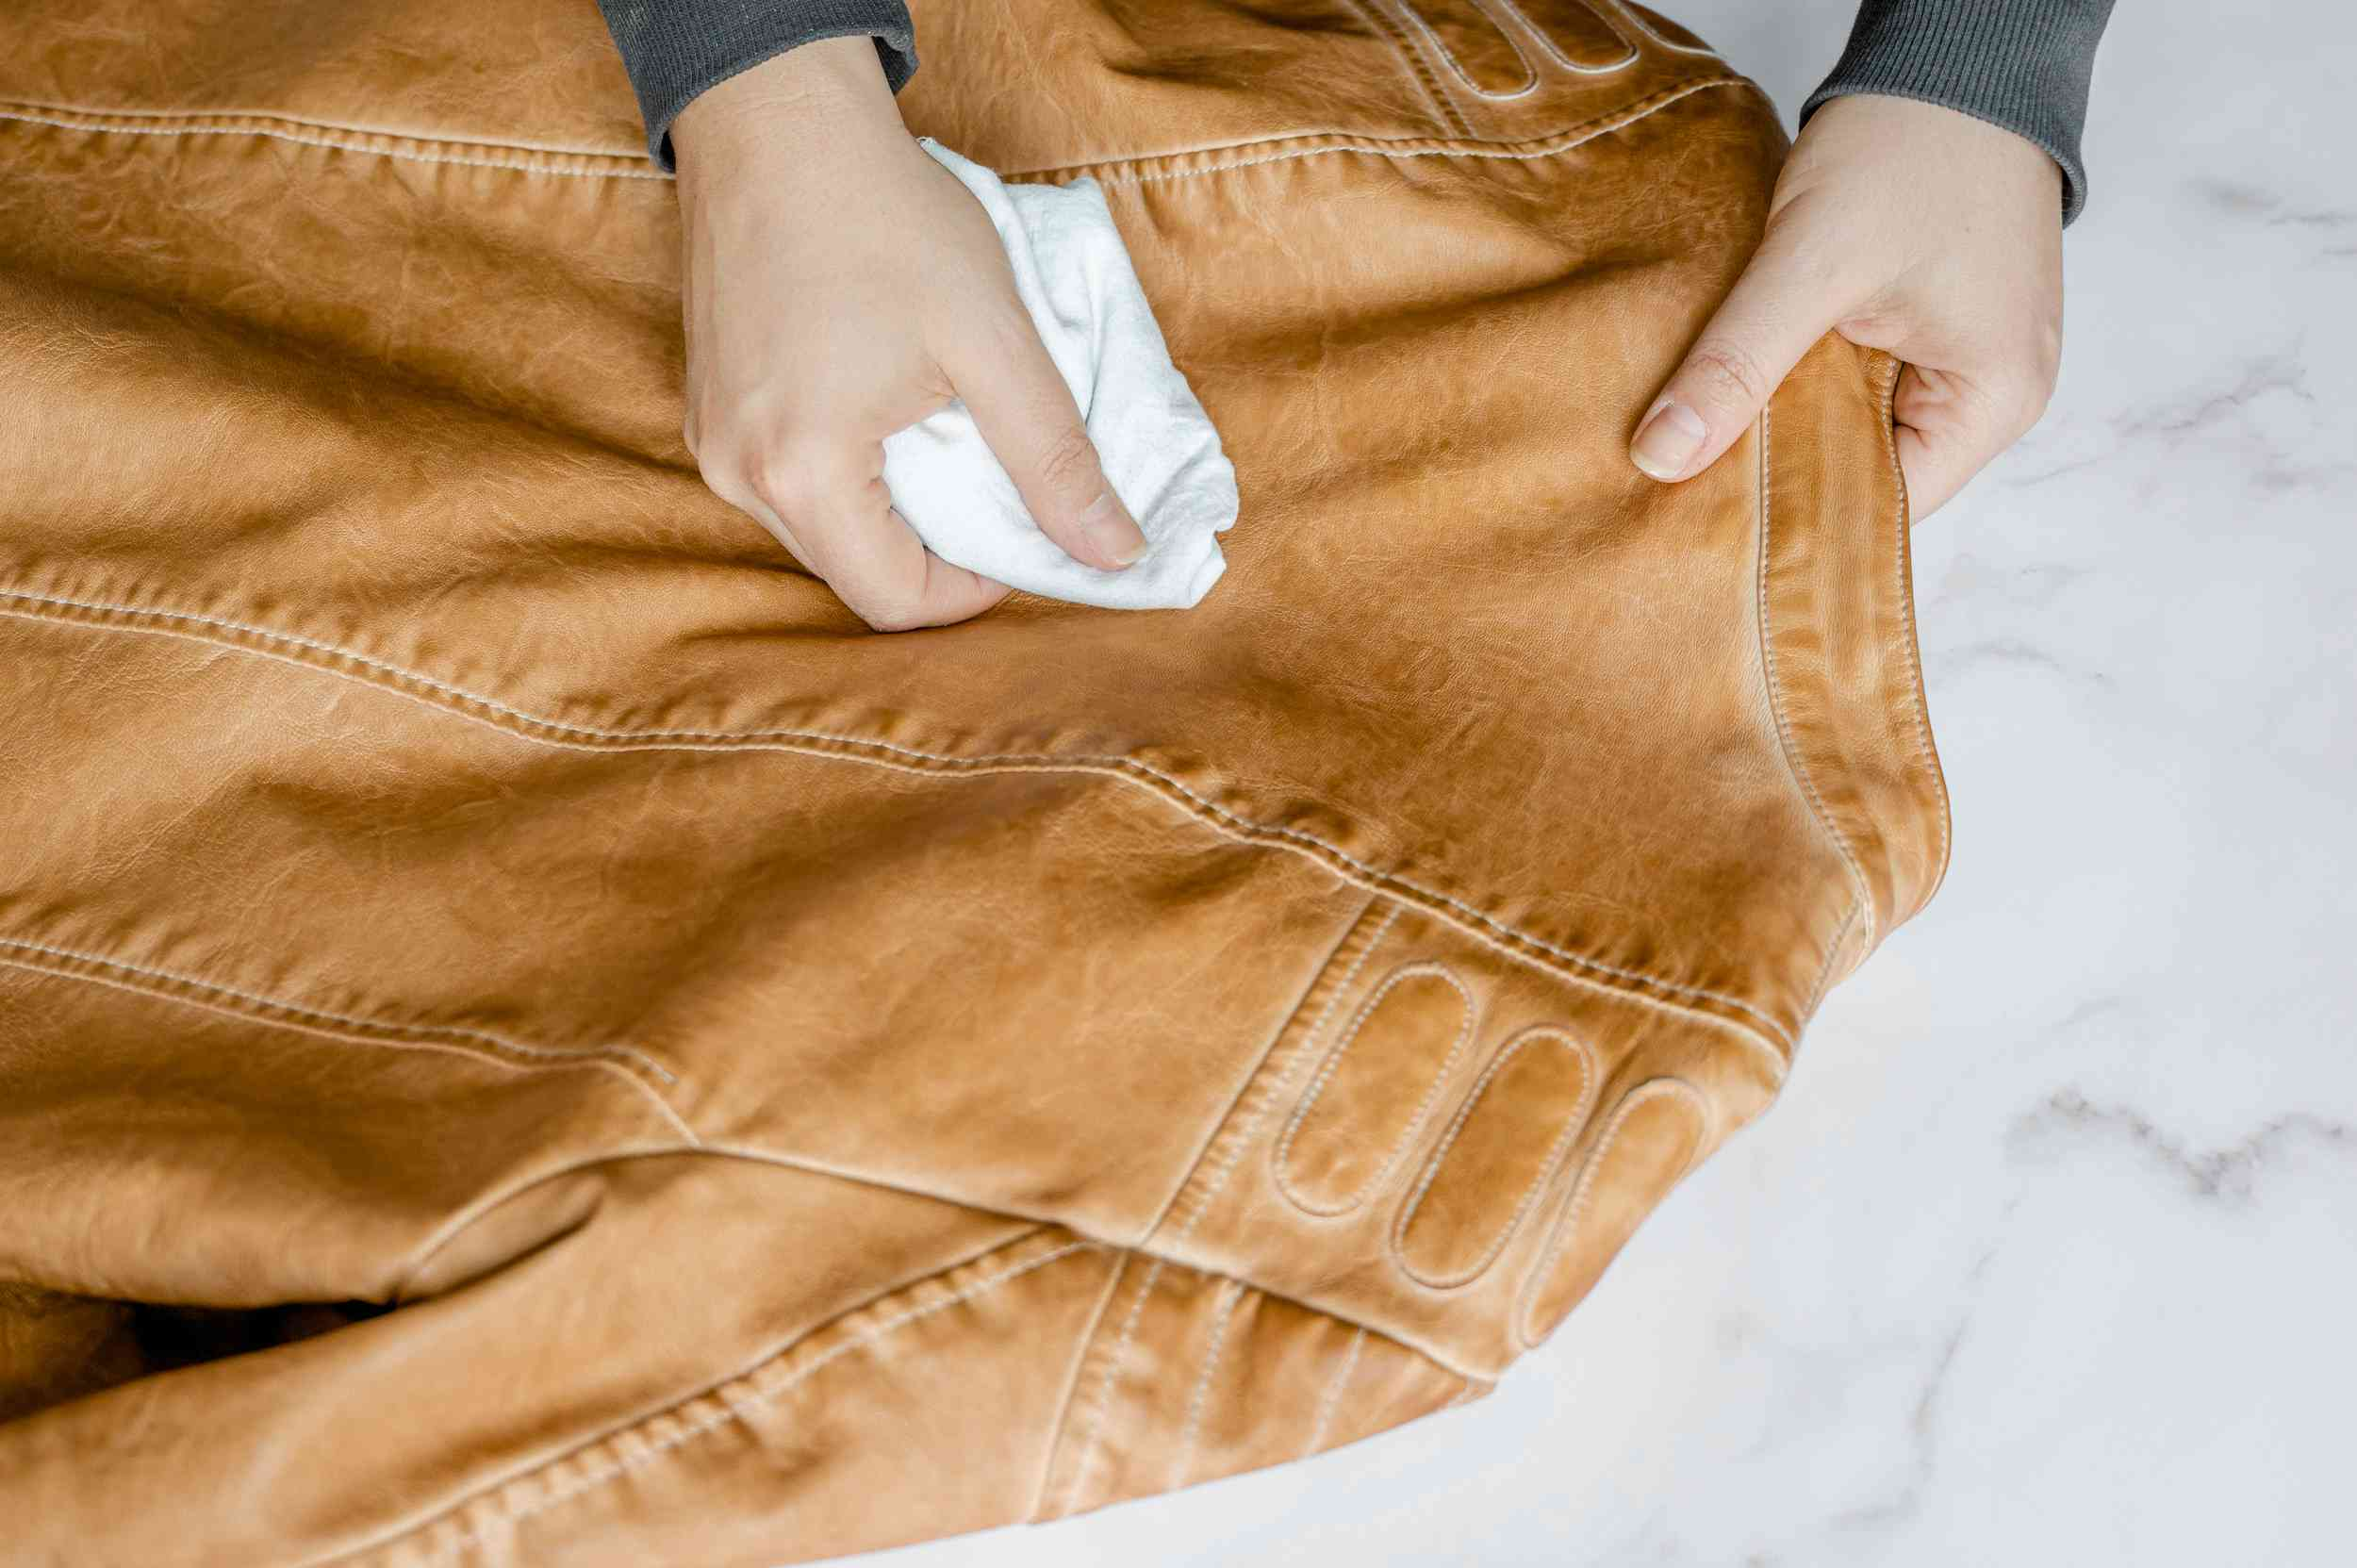 Removing surface stains from leather with a white cloth